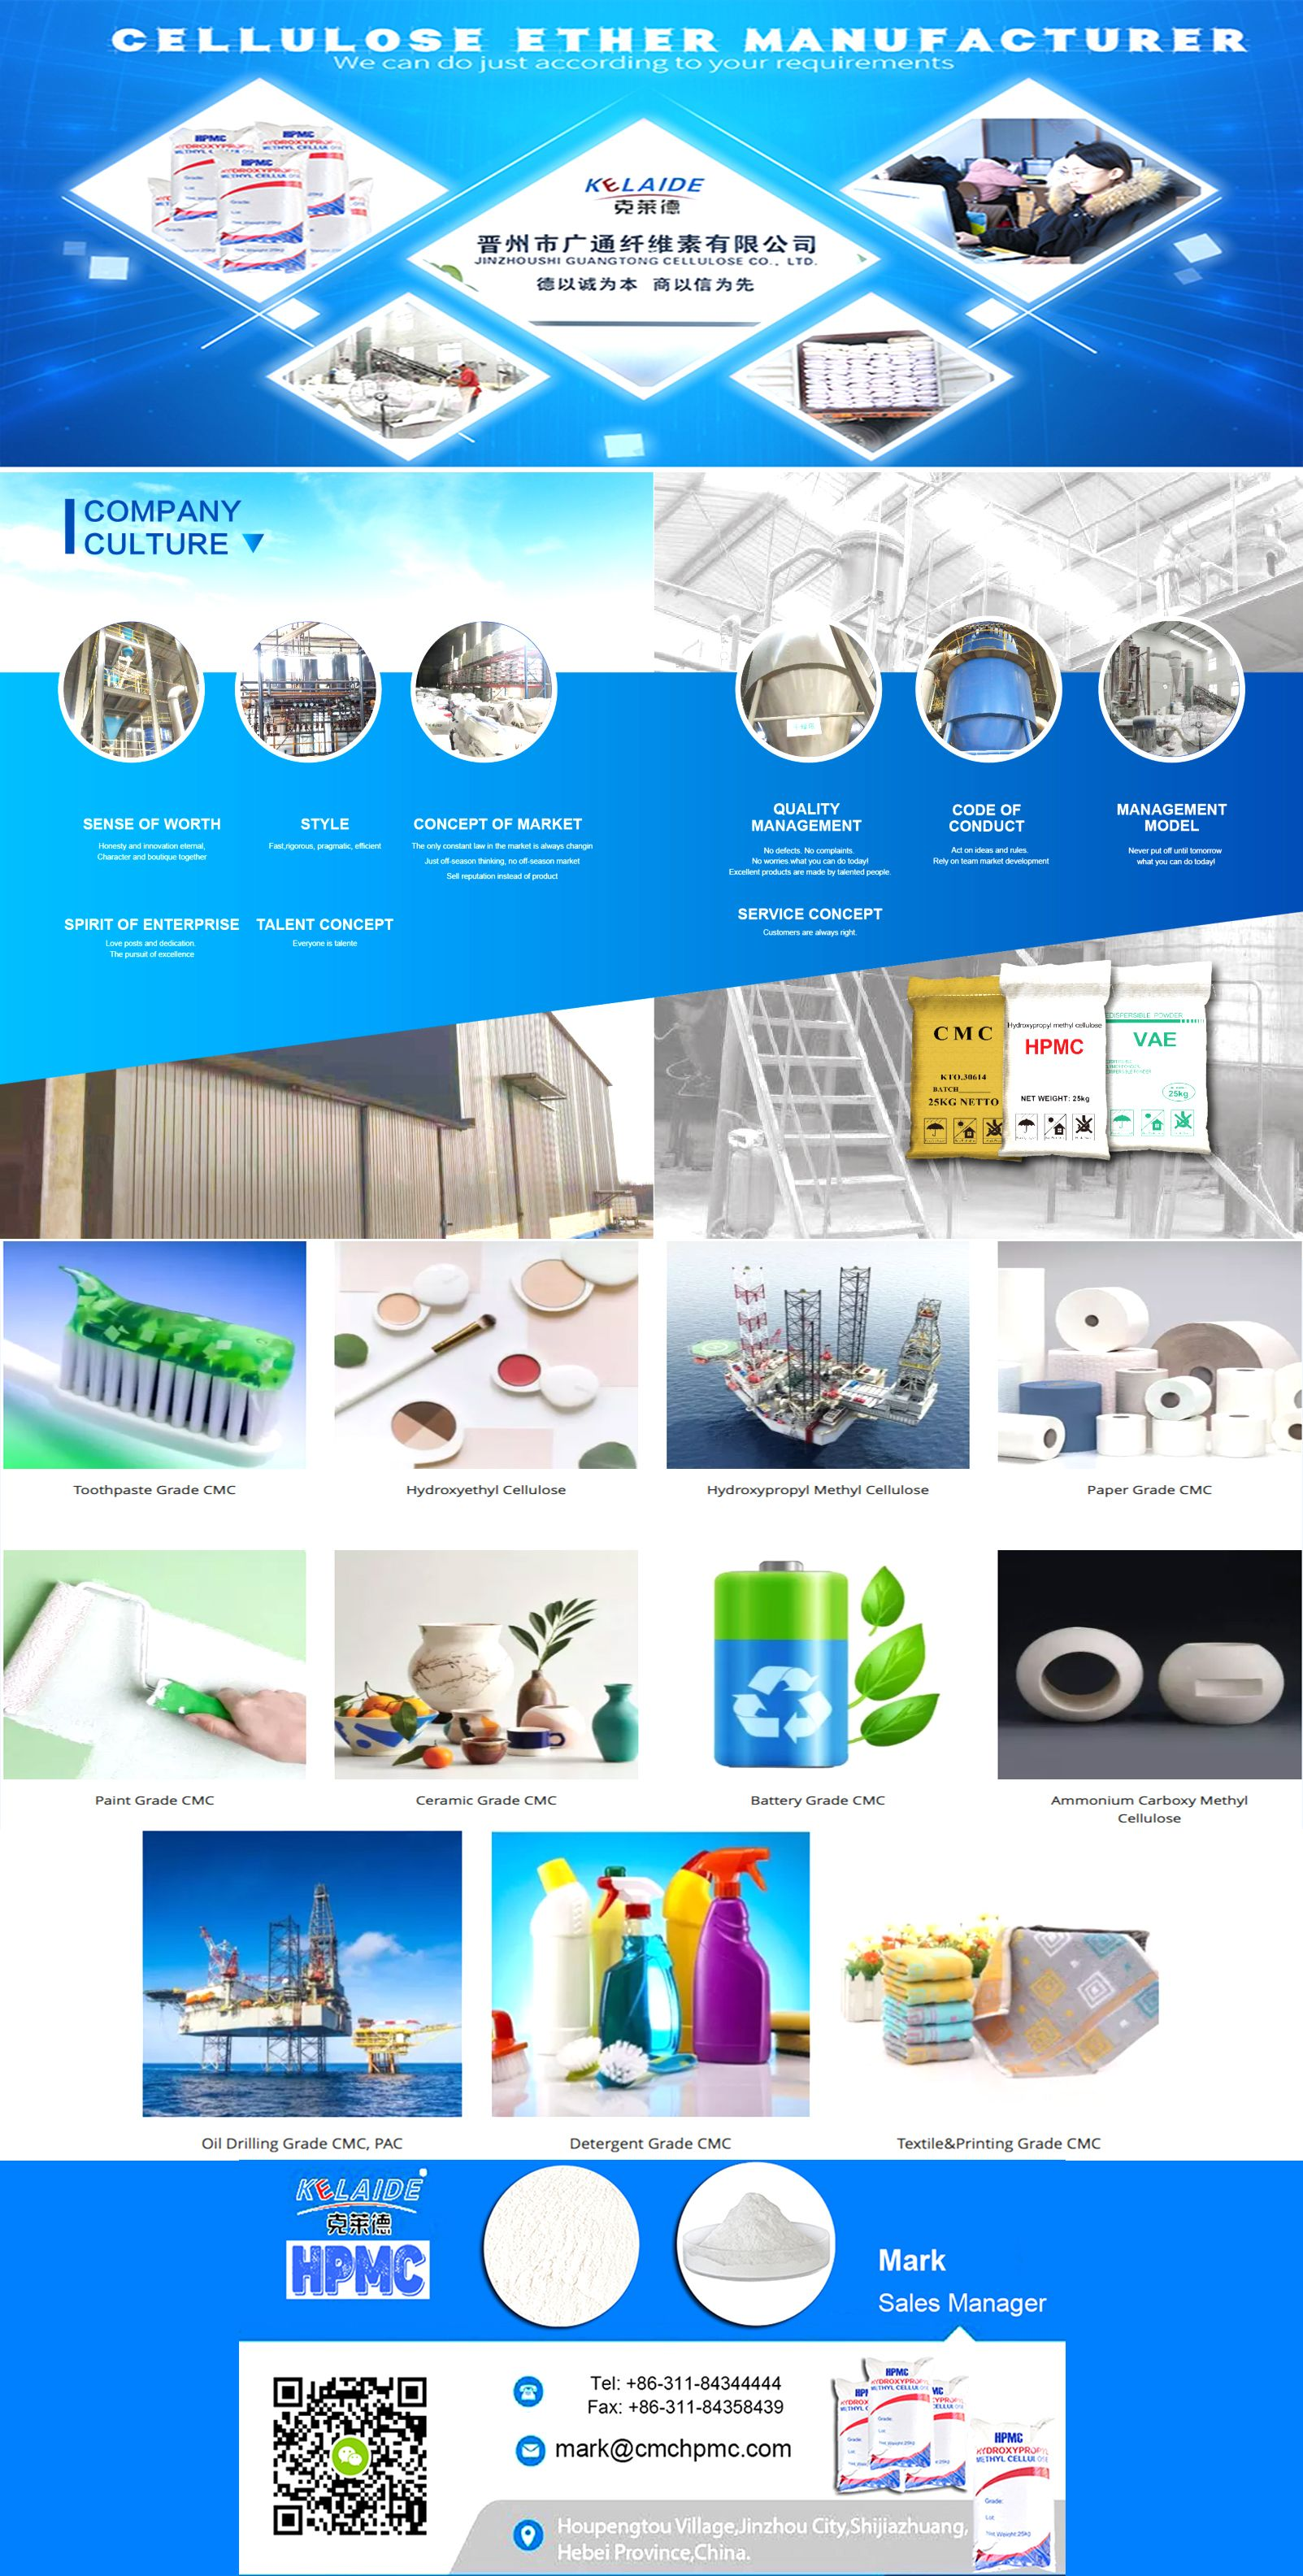 Hpmc Cmc Vae Hps Wall Putty Construction Material Additive Company Culture Construction Materials Construction